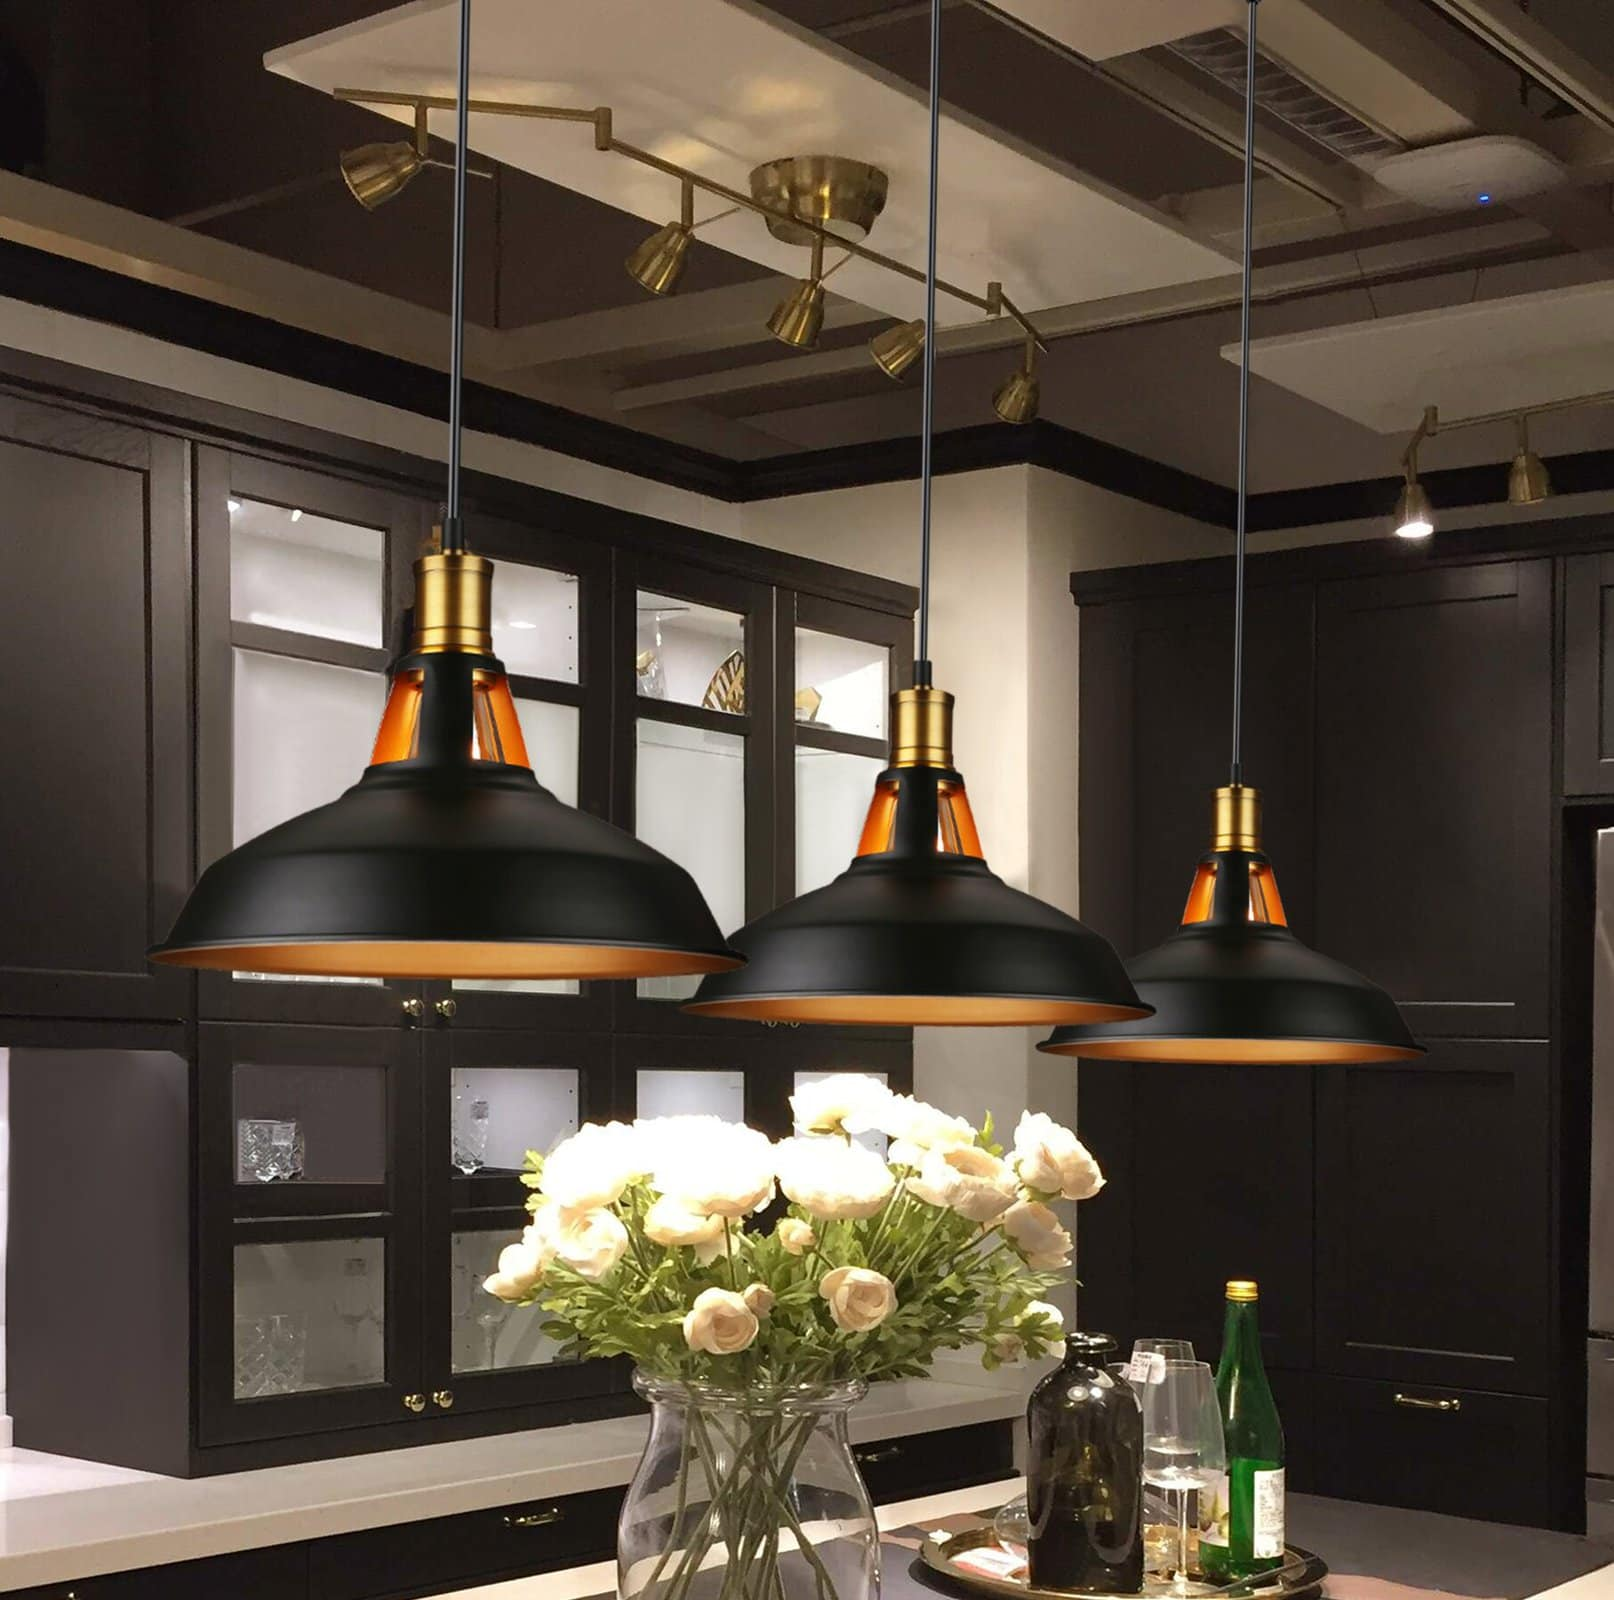 Factory Style Pendant Lights in a Basement Kitchen